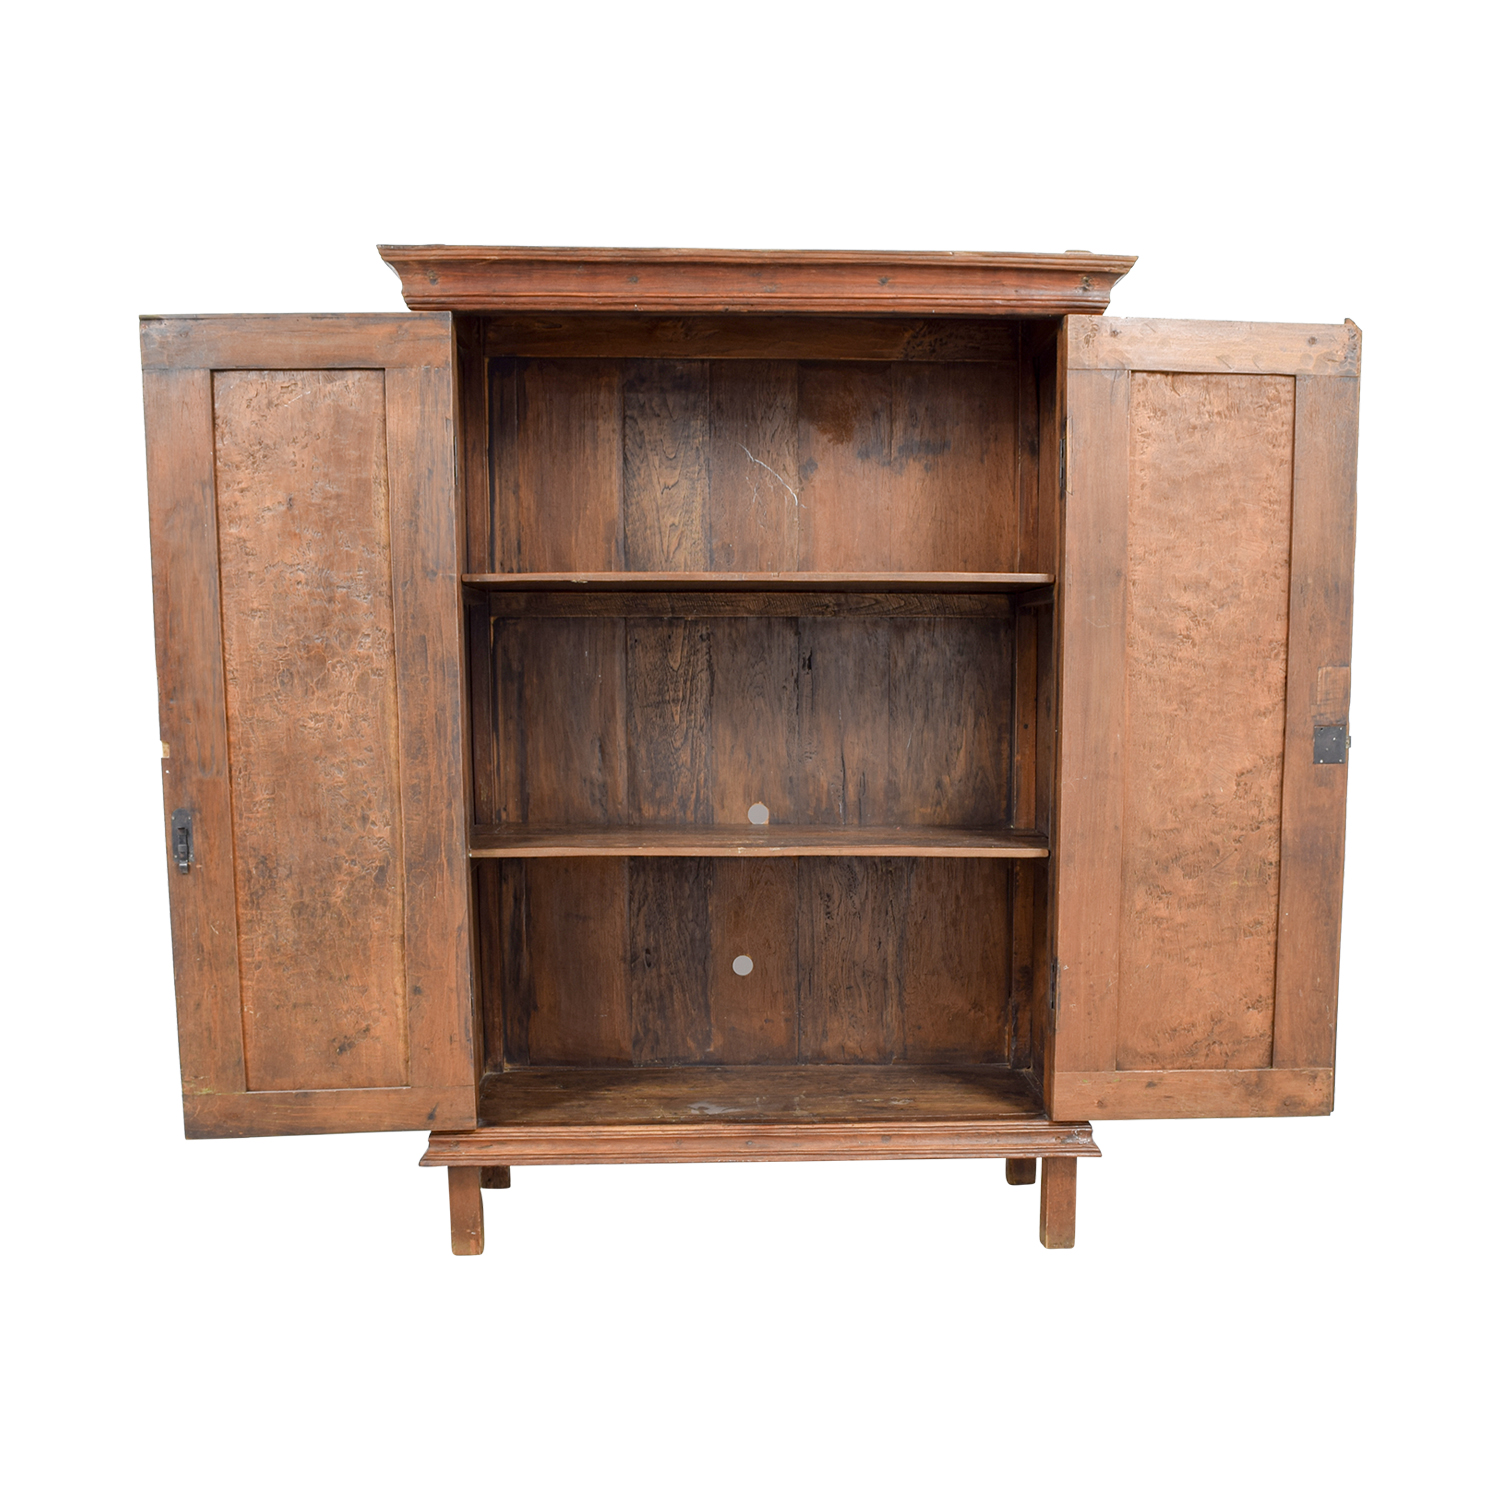 ... Shop ABC Furniture And Home ABC Furniture And Home Indonesian Teak  Armoire Cabinet Online ...